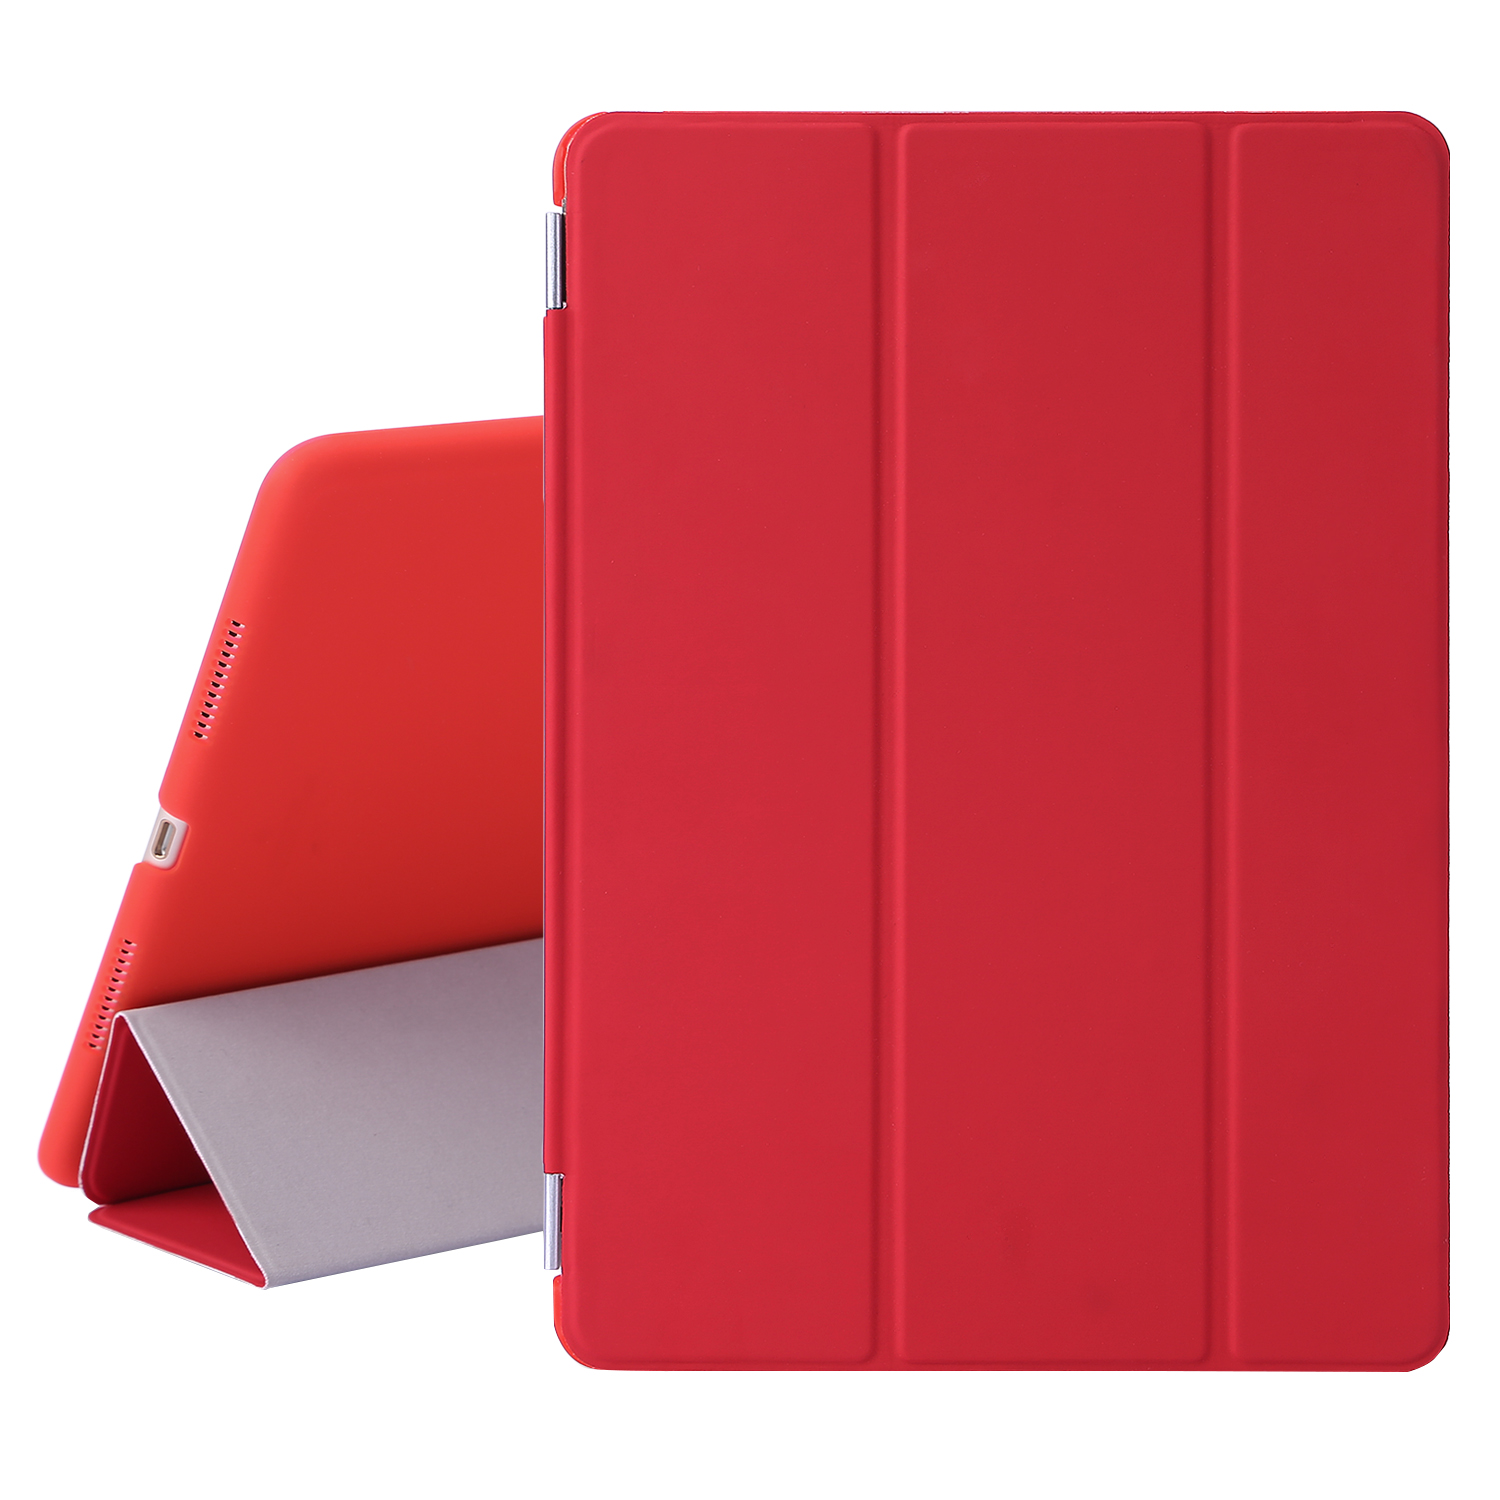 """TKOOFN iPad Case for Apple iPad Pro 9.7"""" Magnetic Leather Ultra Slim Light Weight Trifold Smart Cover"""